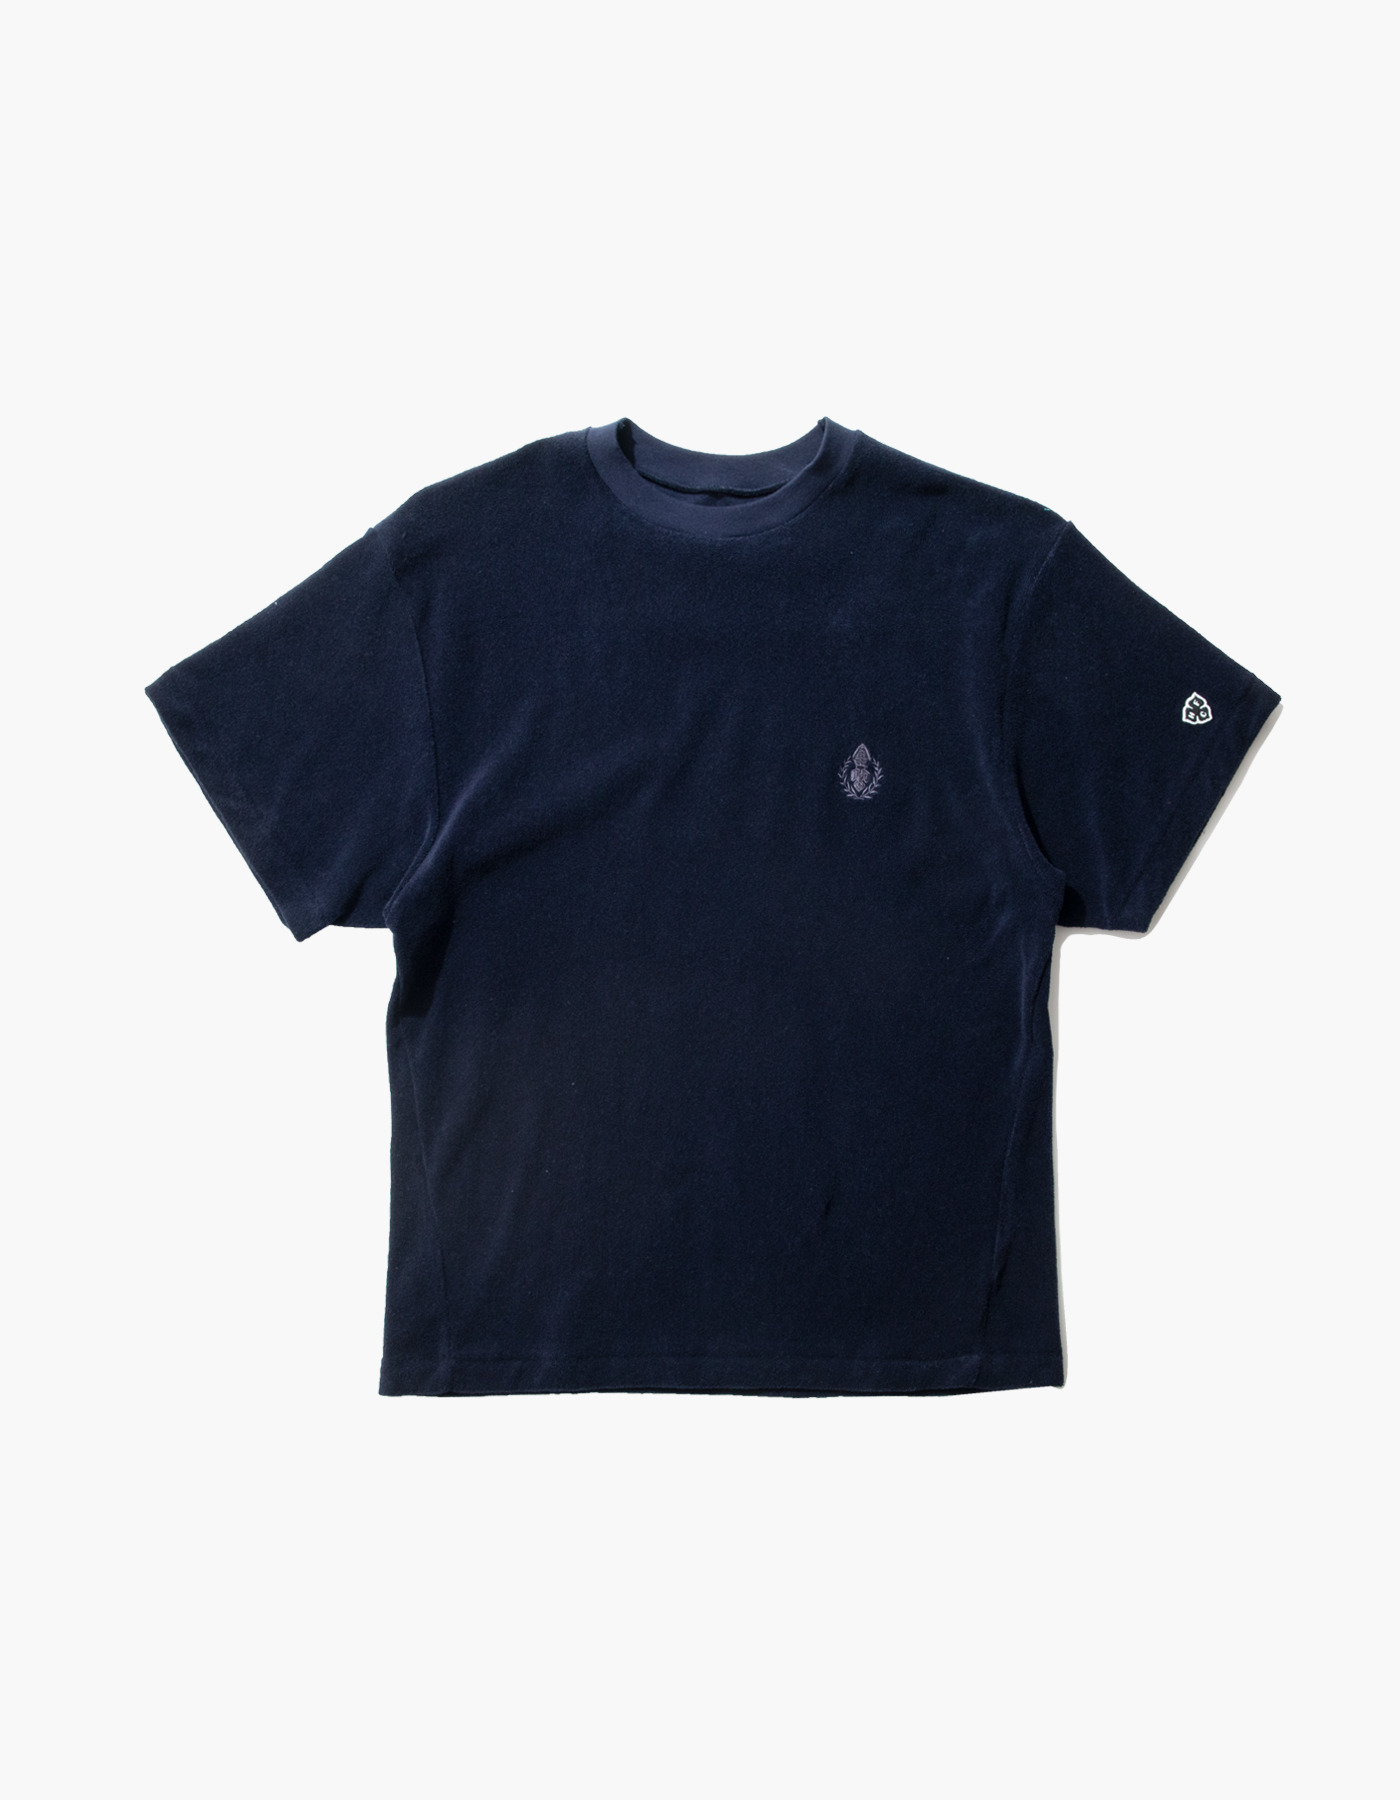 HFC CREST TOWEL T-SHIRTS / NAVY